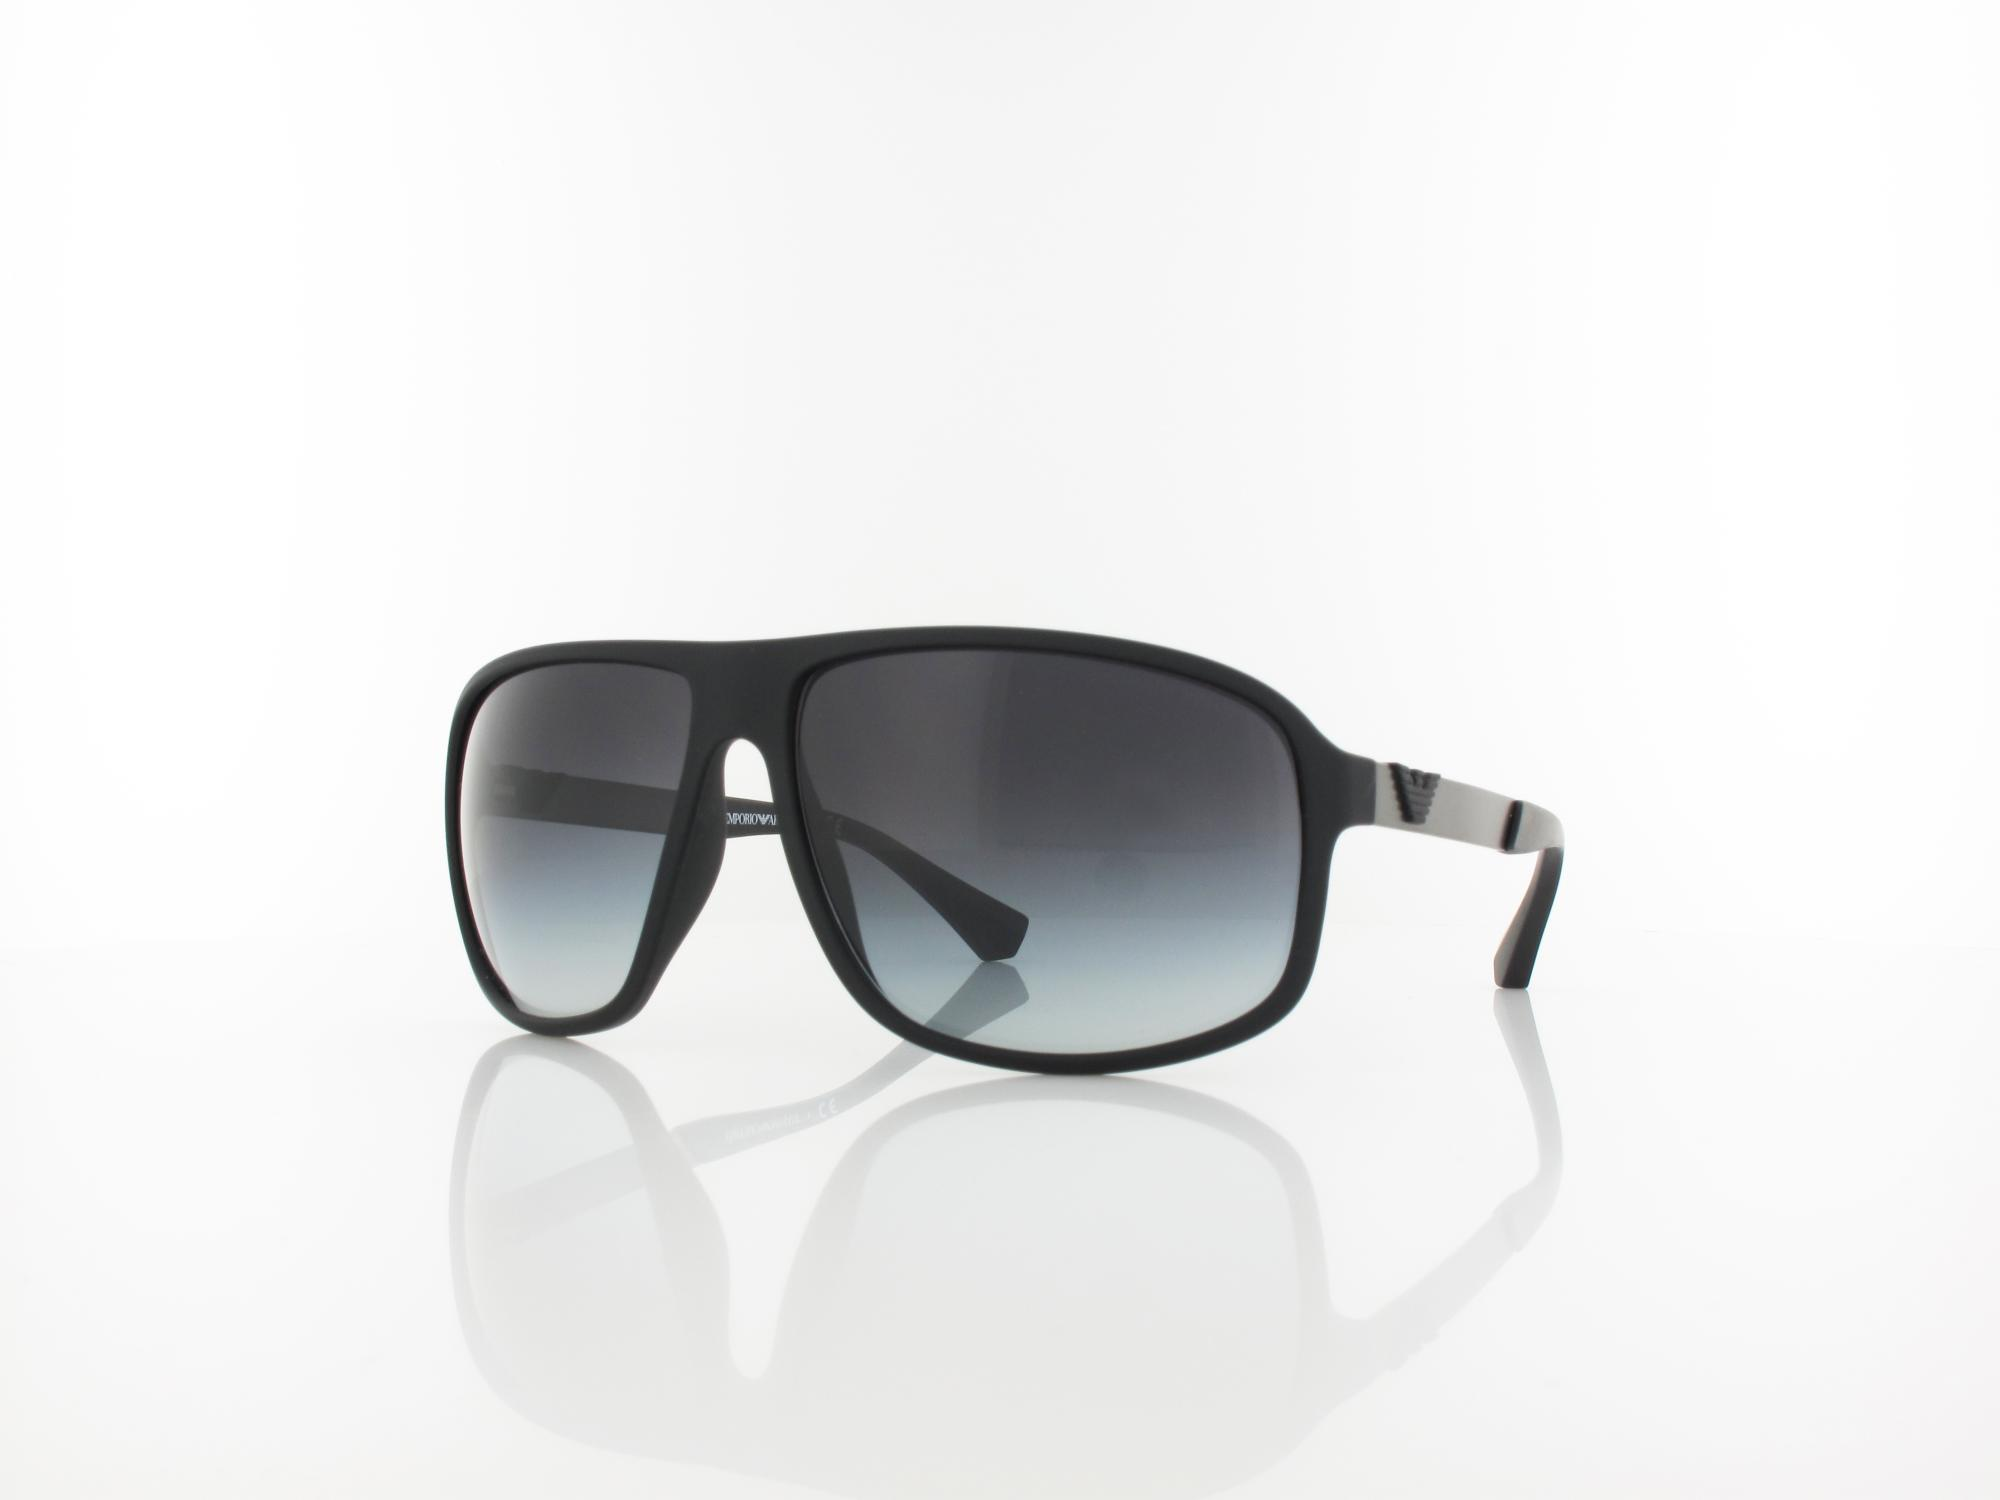 Emporio Armani | EA4029 50638G 64 | black rubber / grey gradient